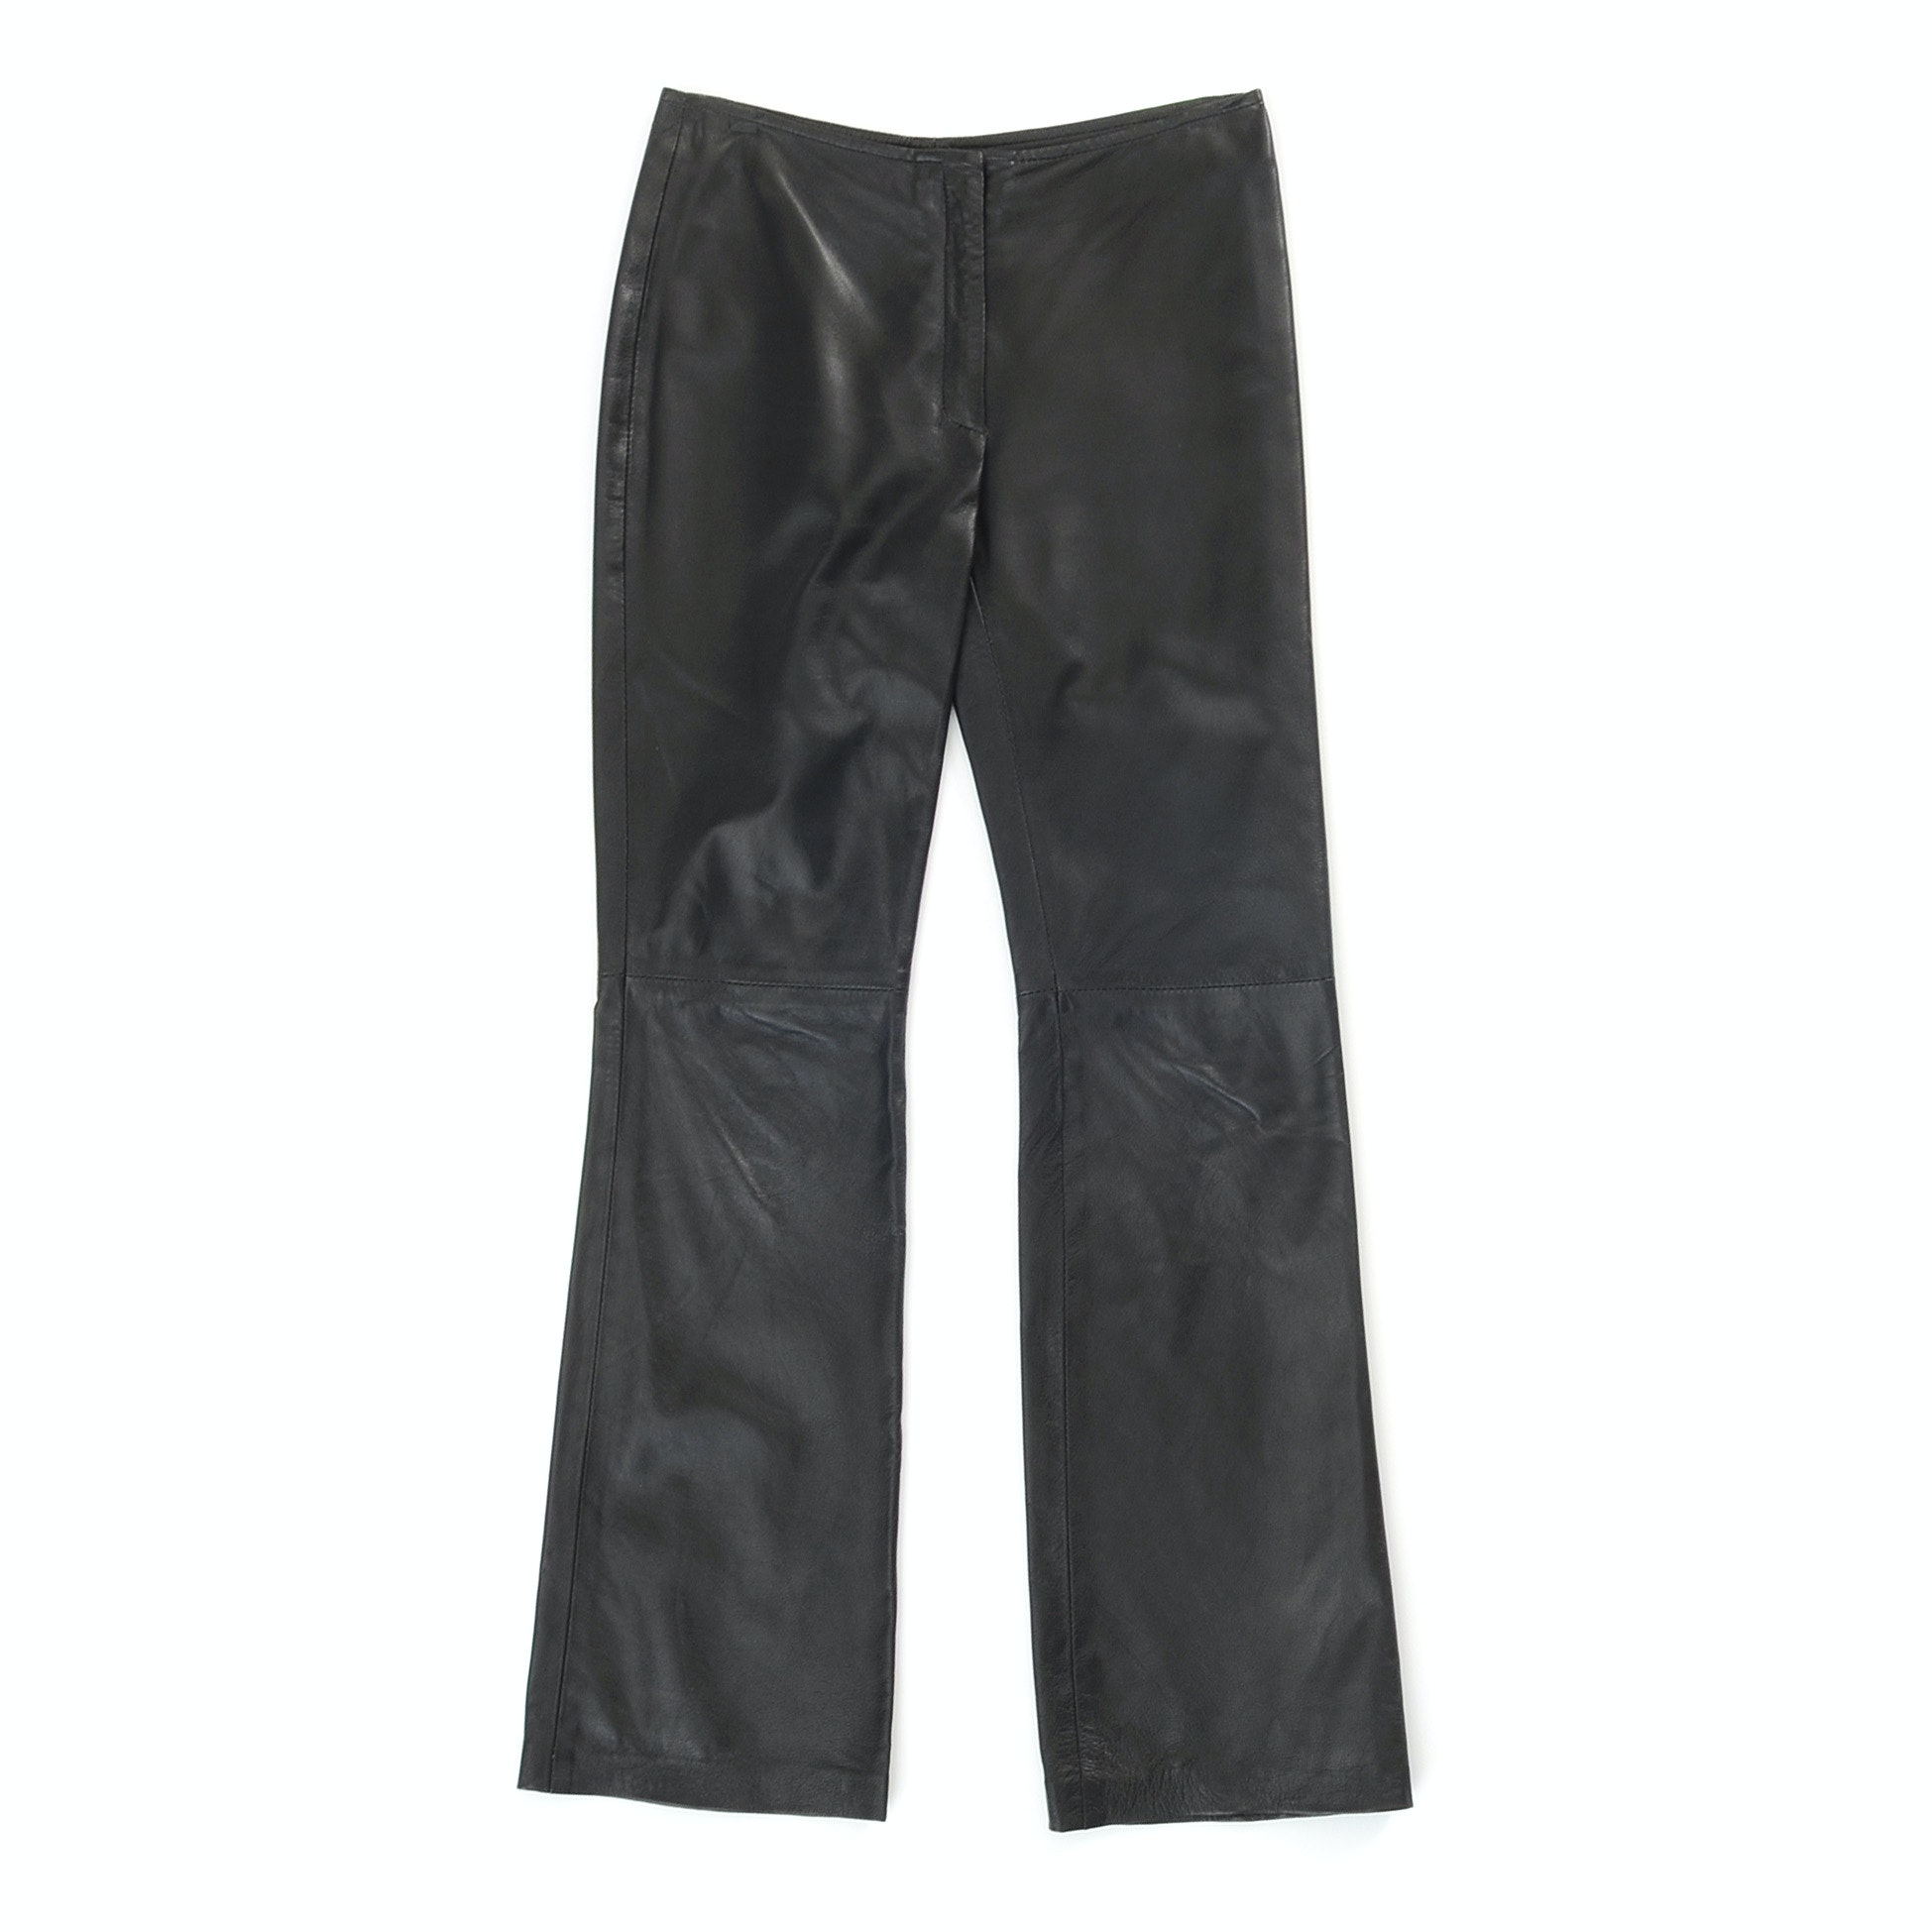 Jill Stuart Black Lambskin Leather Pants